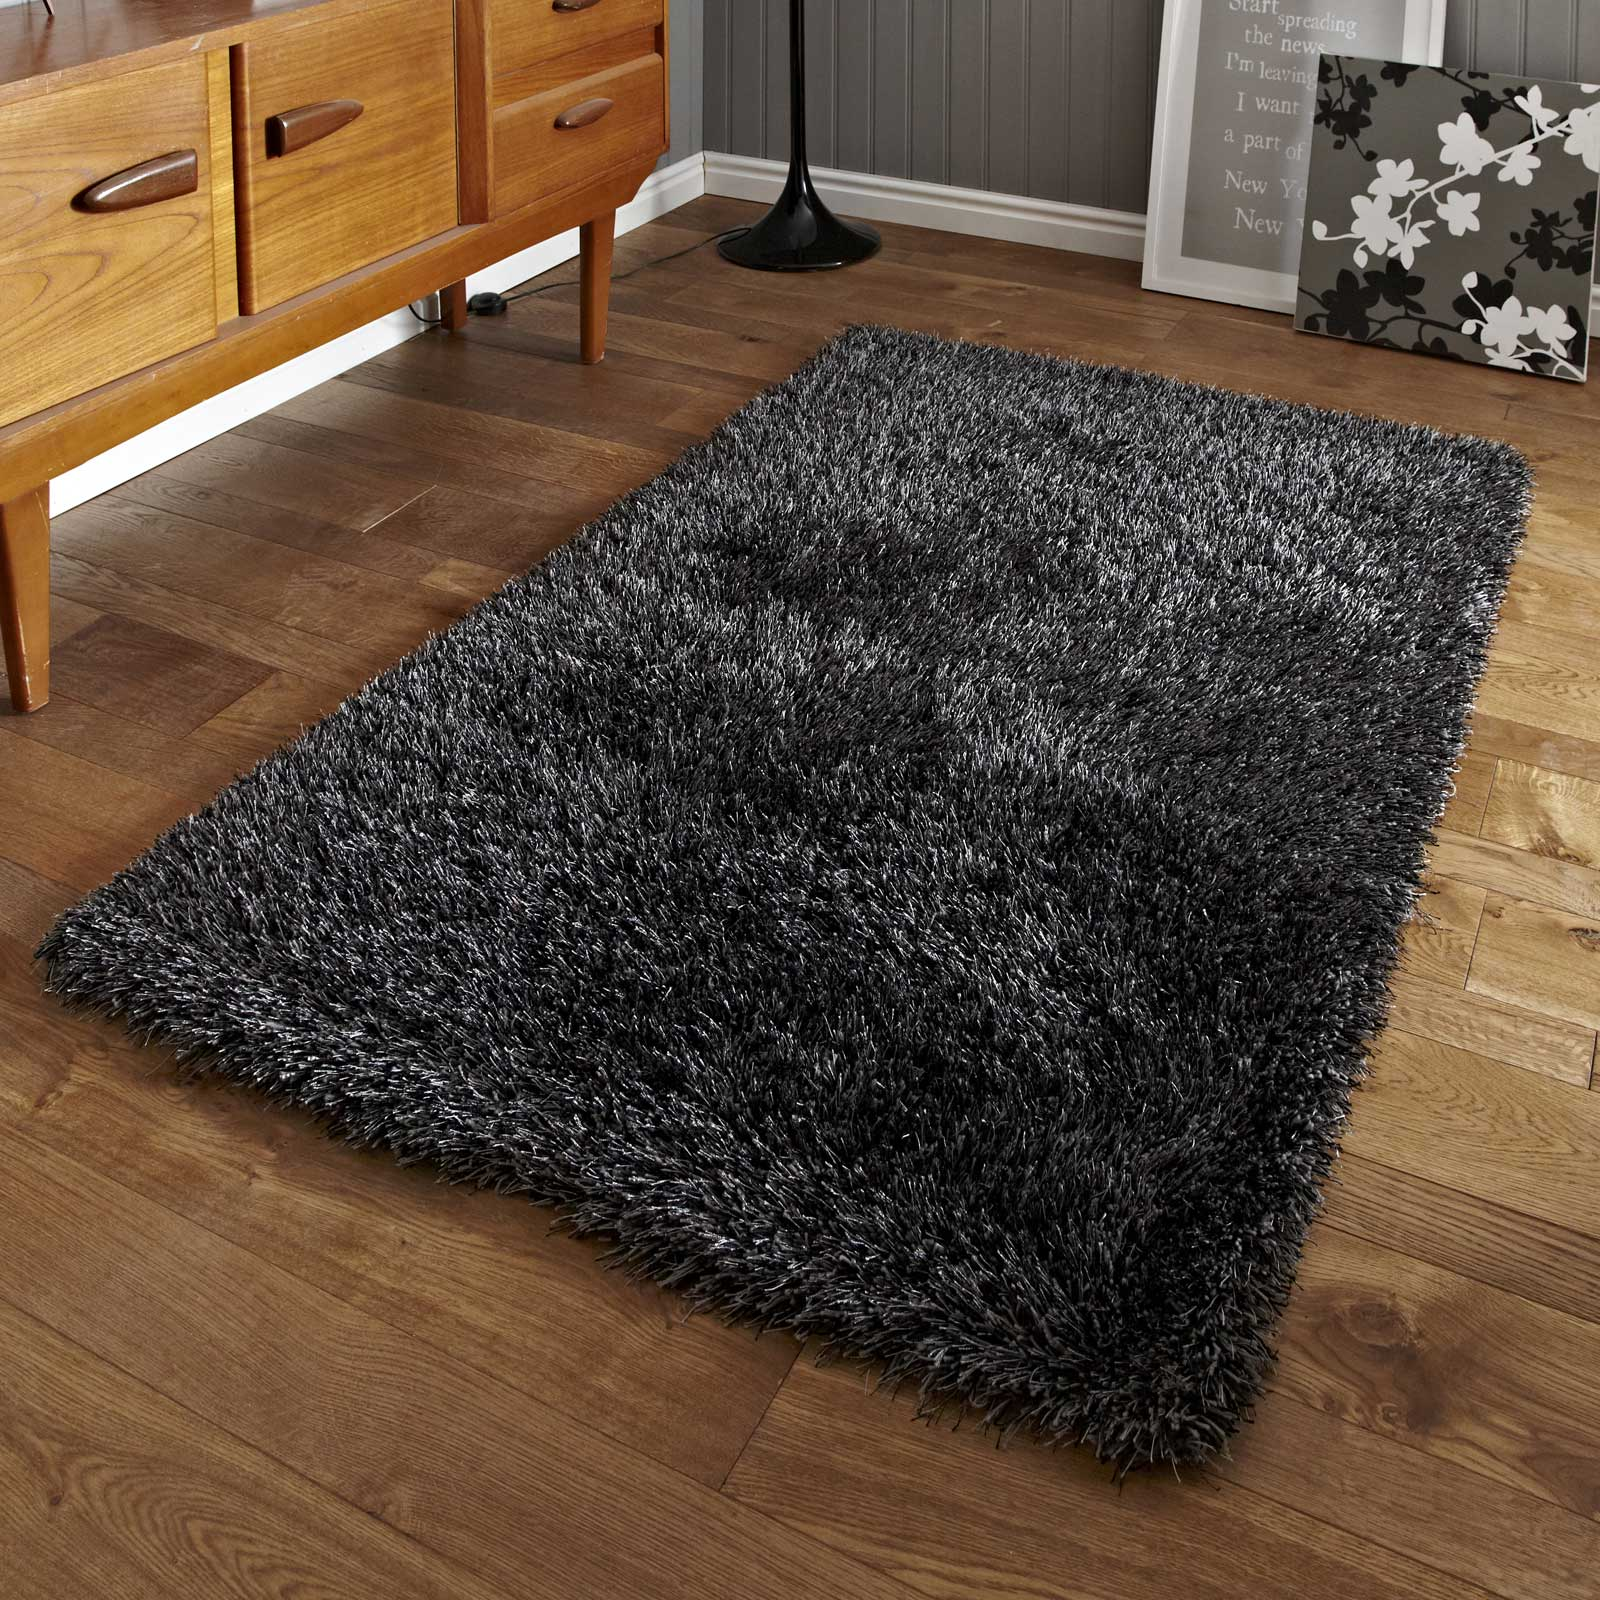 Monte Carlo Hand Made Shaggy Rugs in Grey